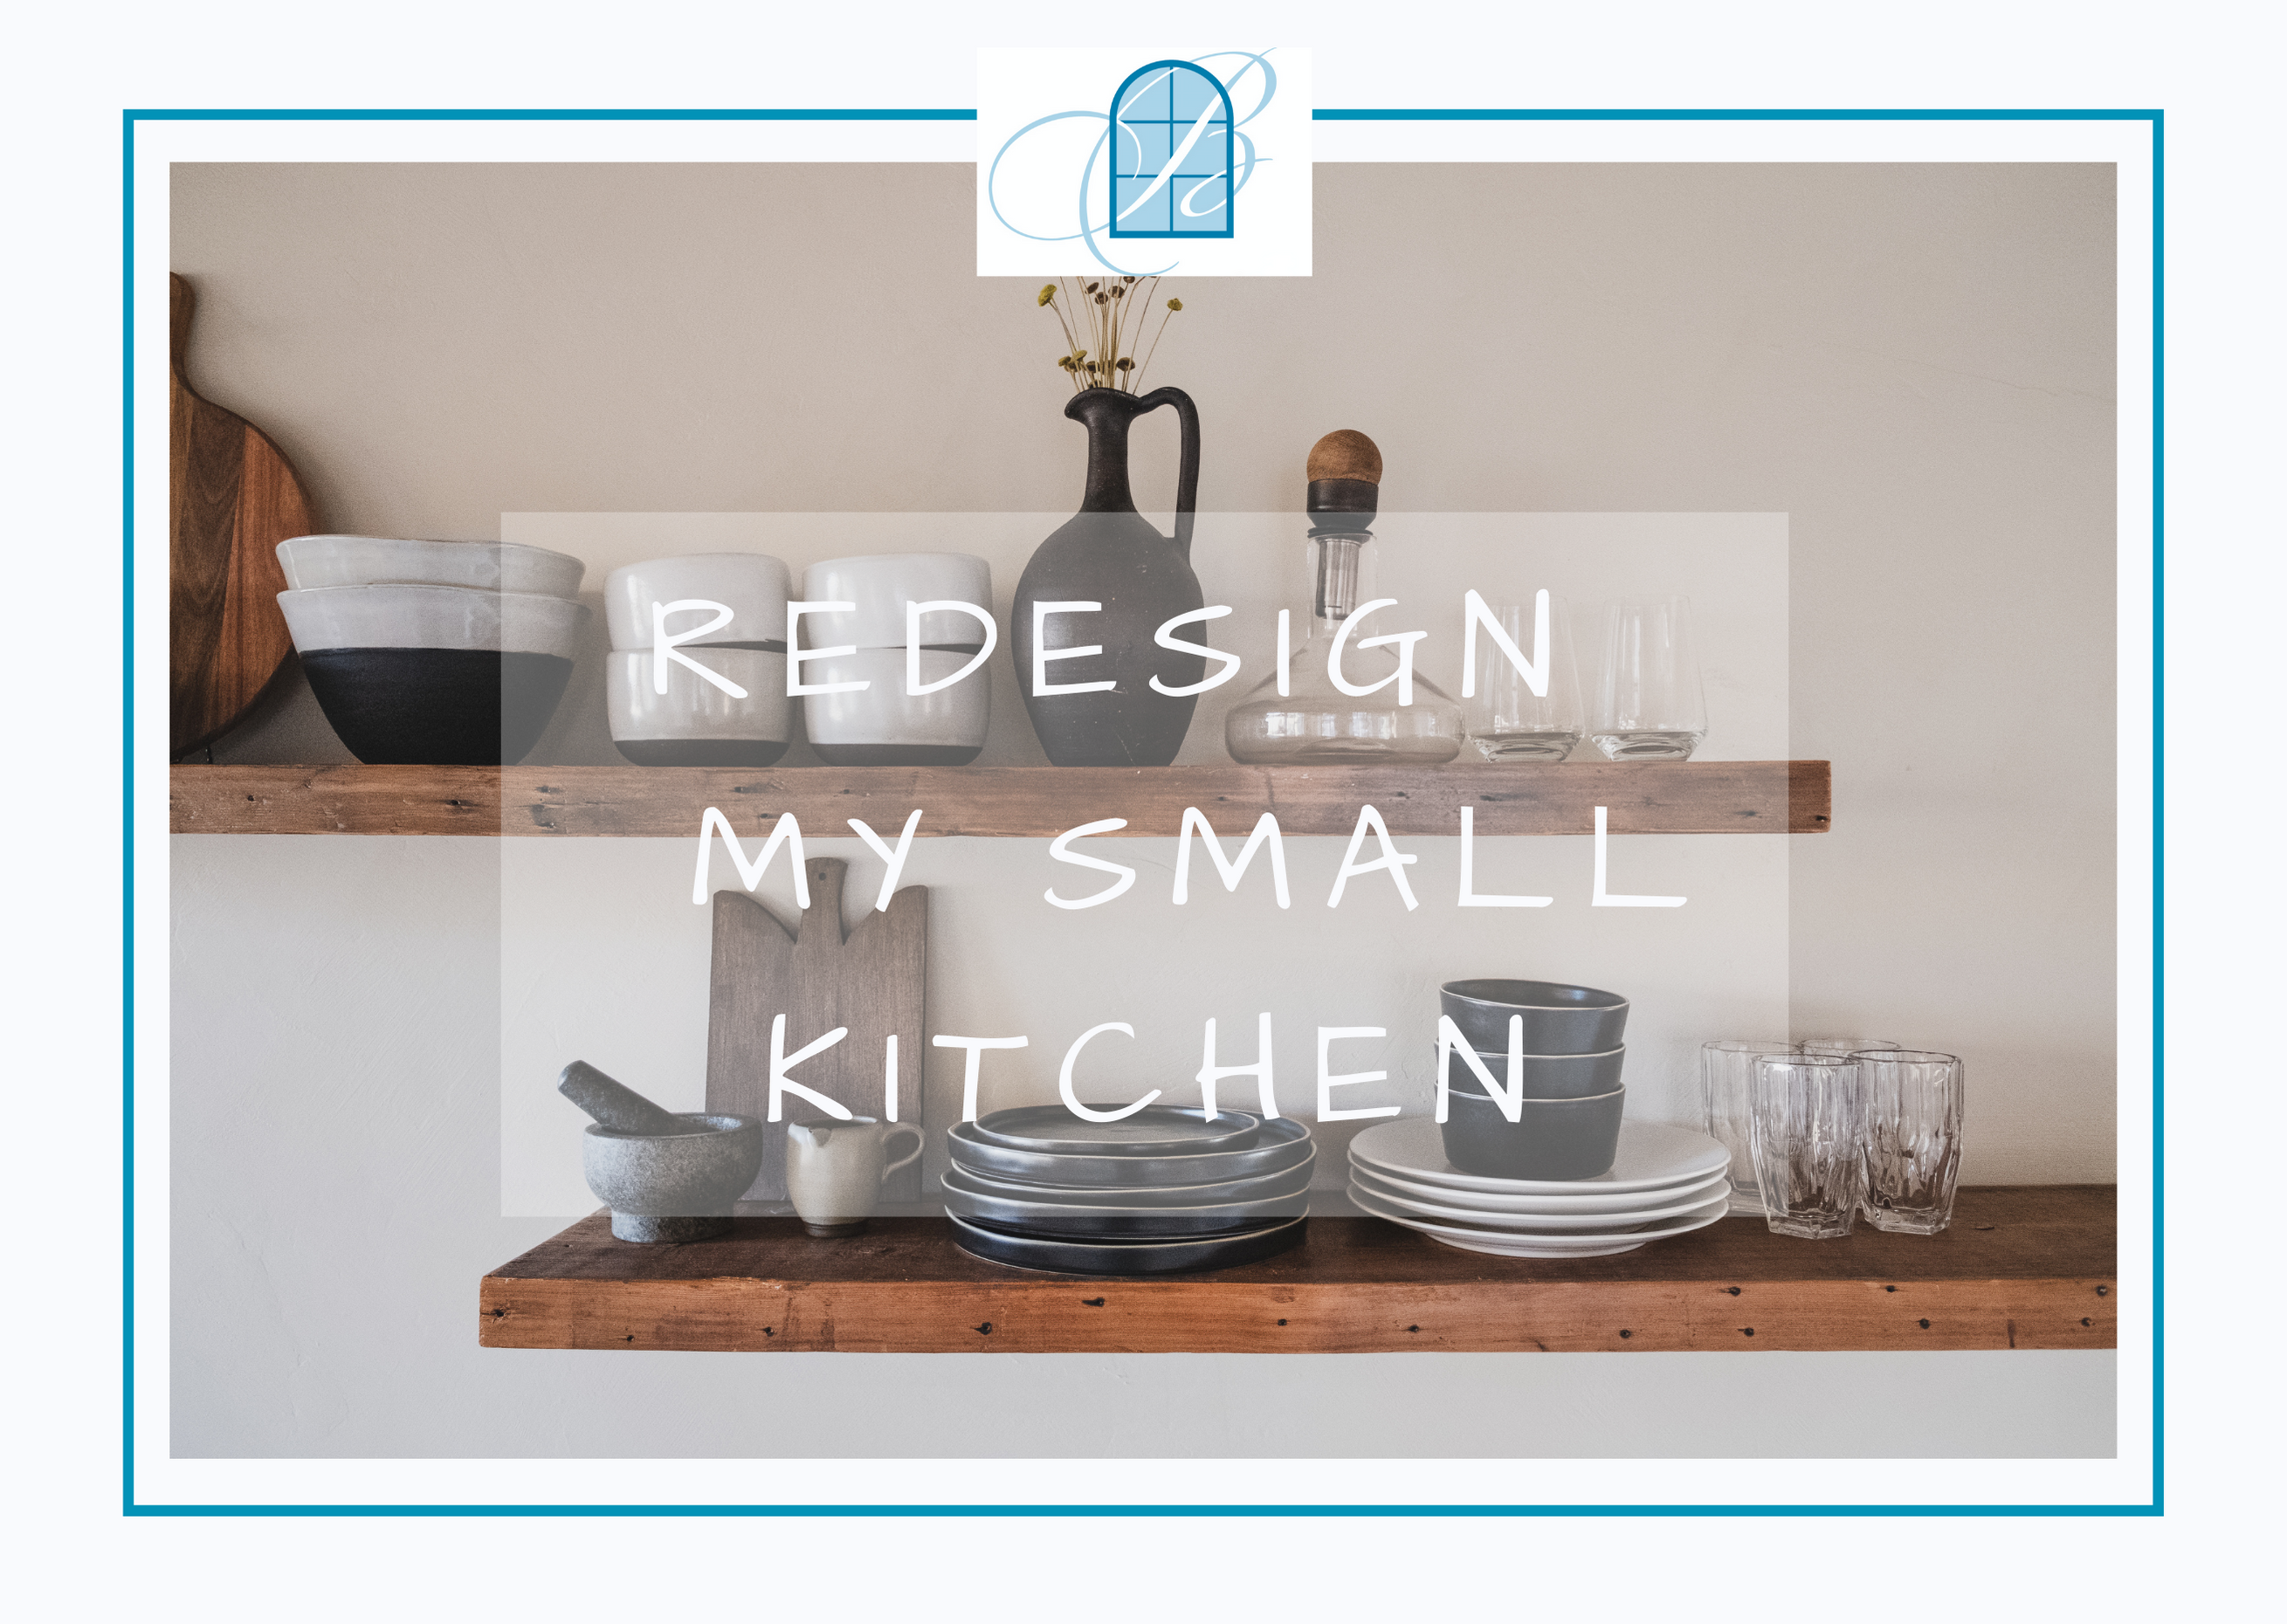 Redesign my small kitchen.png